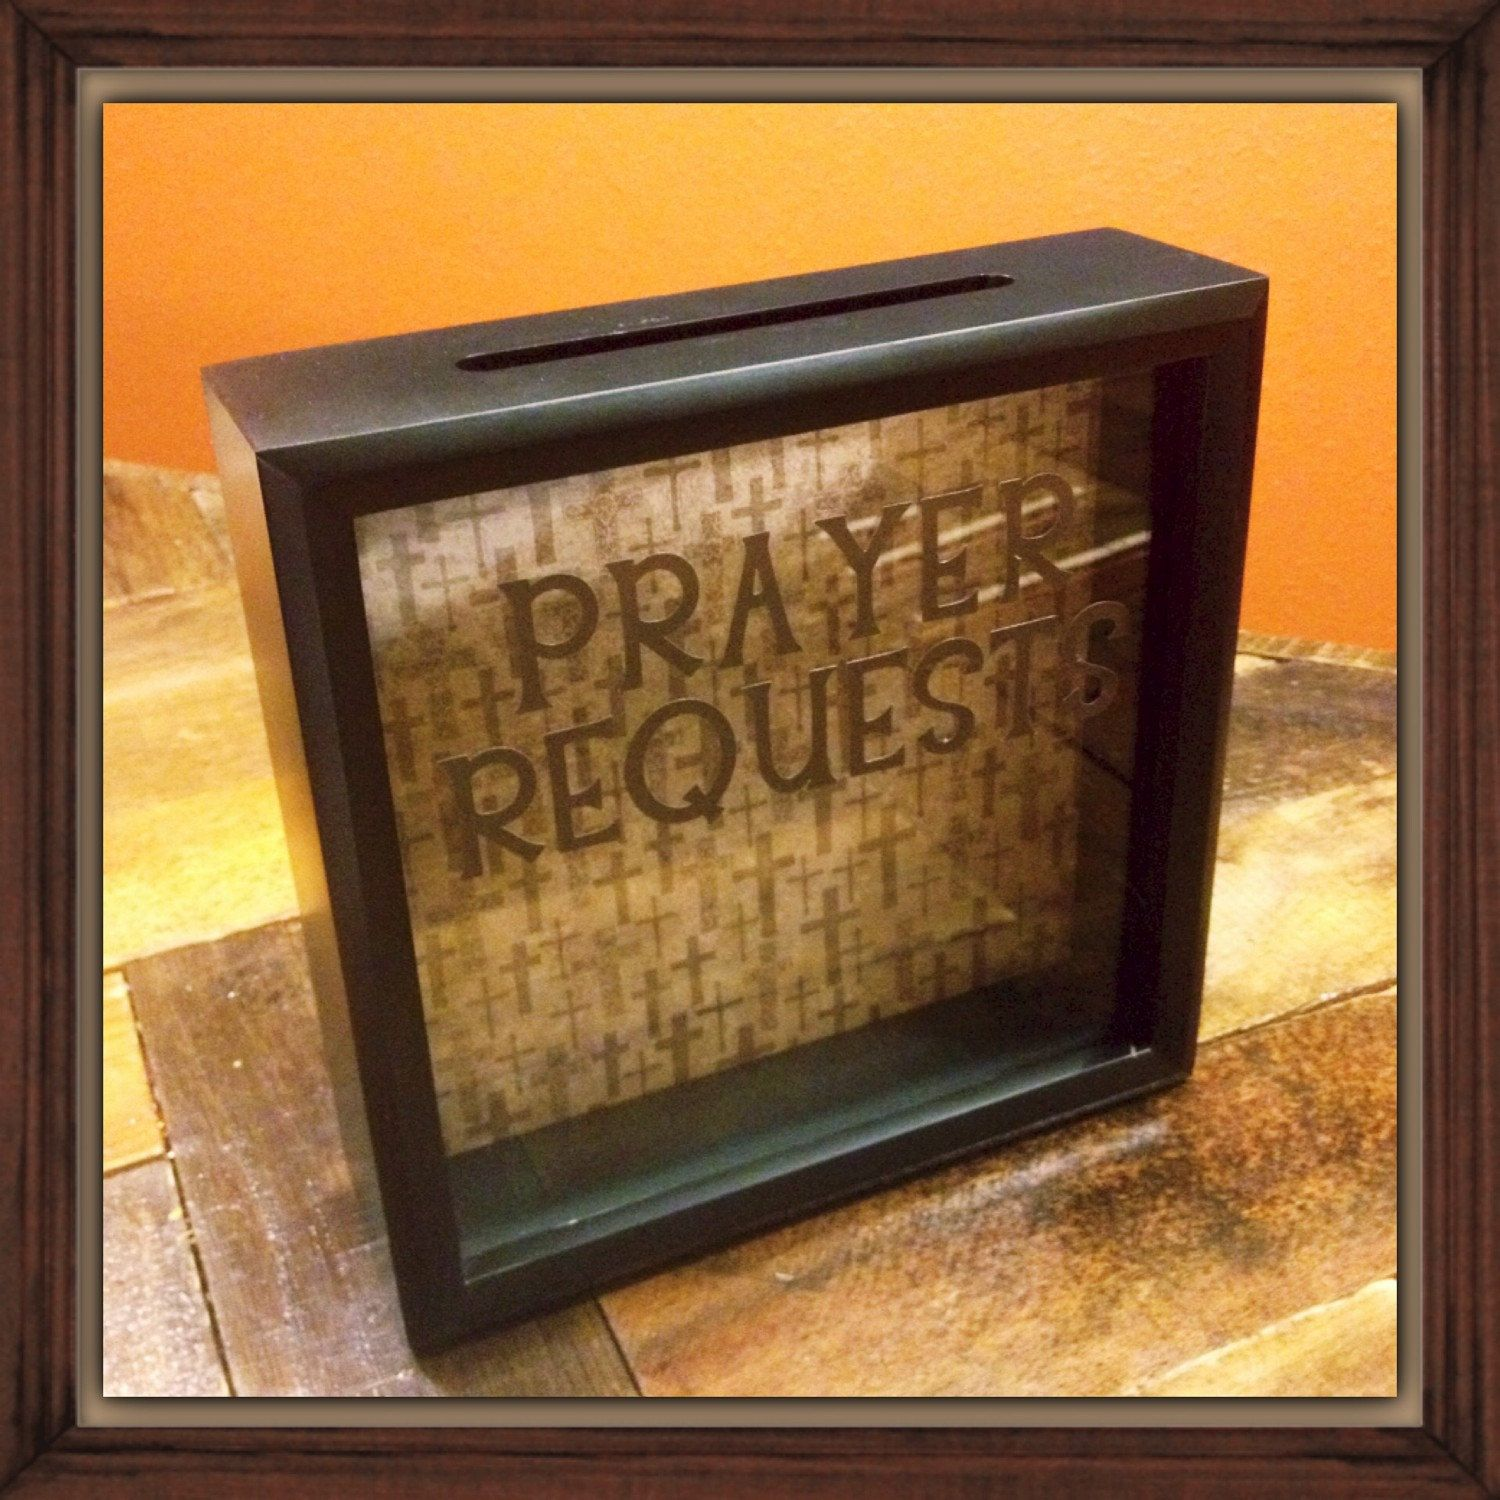 PRAYER REQUESTS box, 8x8, Church Camp, Youth Group, Summer